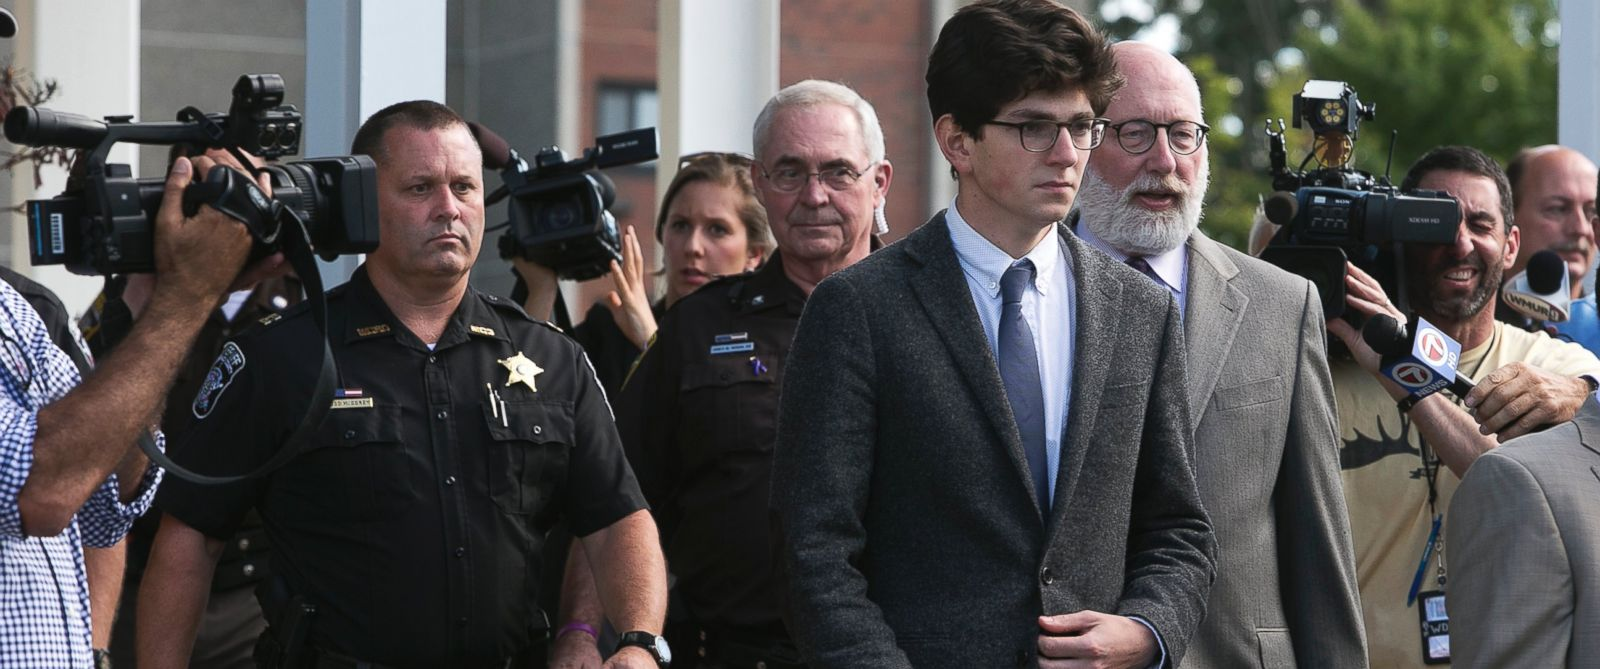 PHOTO:Owen Labrie leaves Merrimack Superior Court with his attorney Jay Carney in Concord, N.H., Aug. 28, 2015, in Concord, N.H.